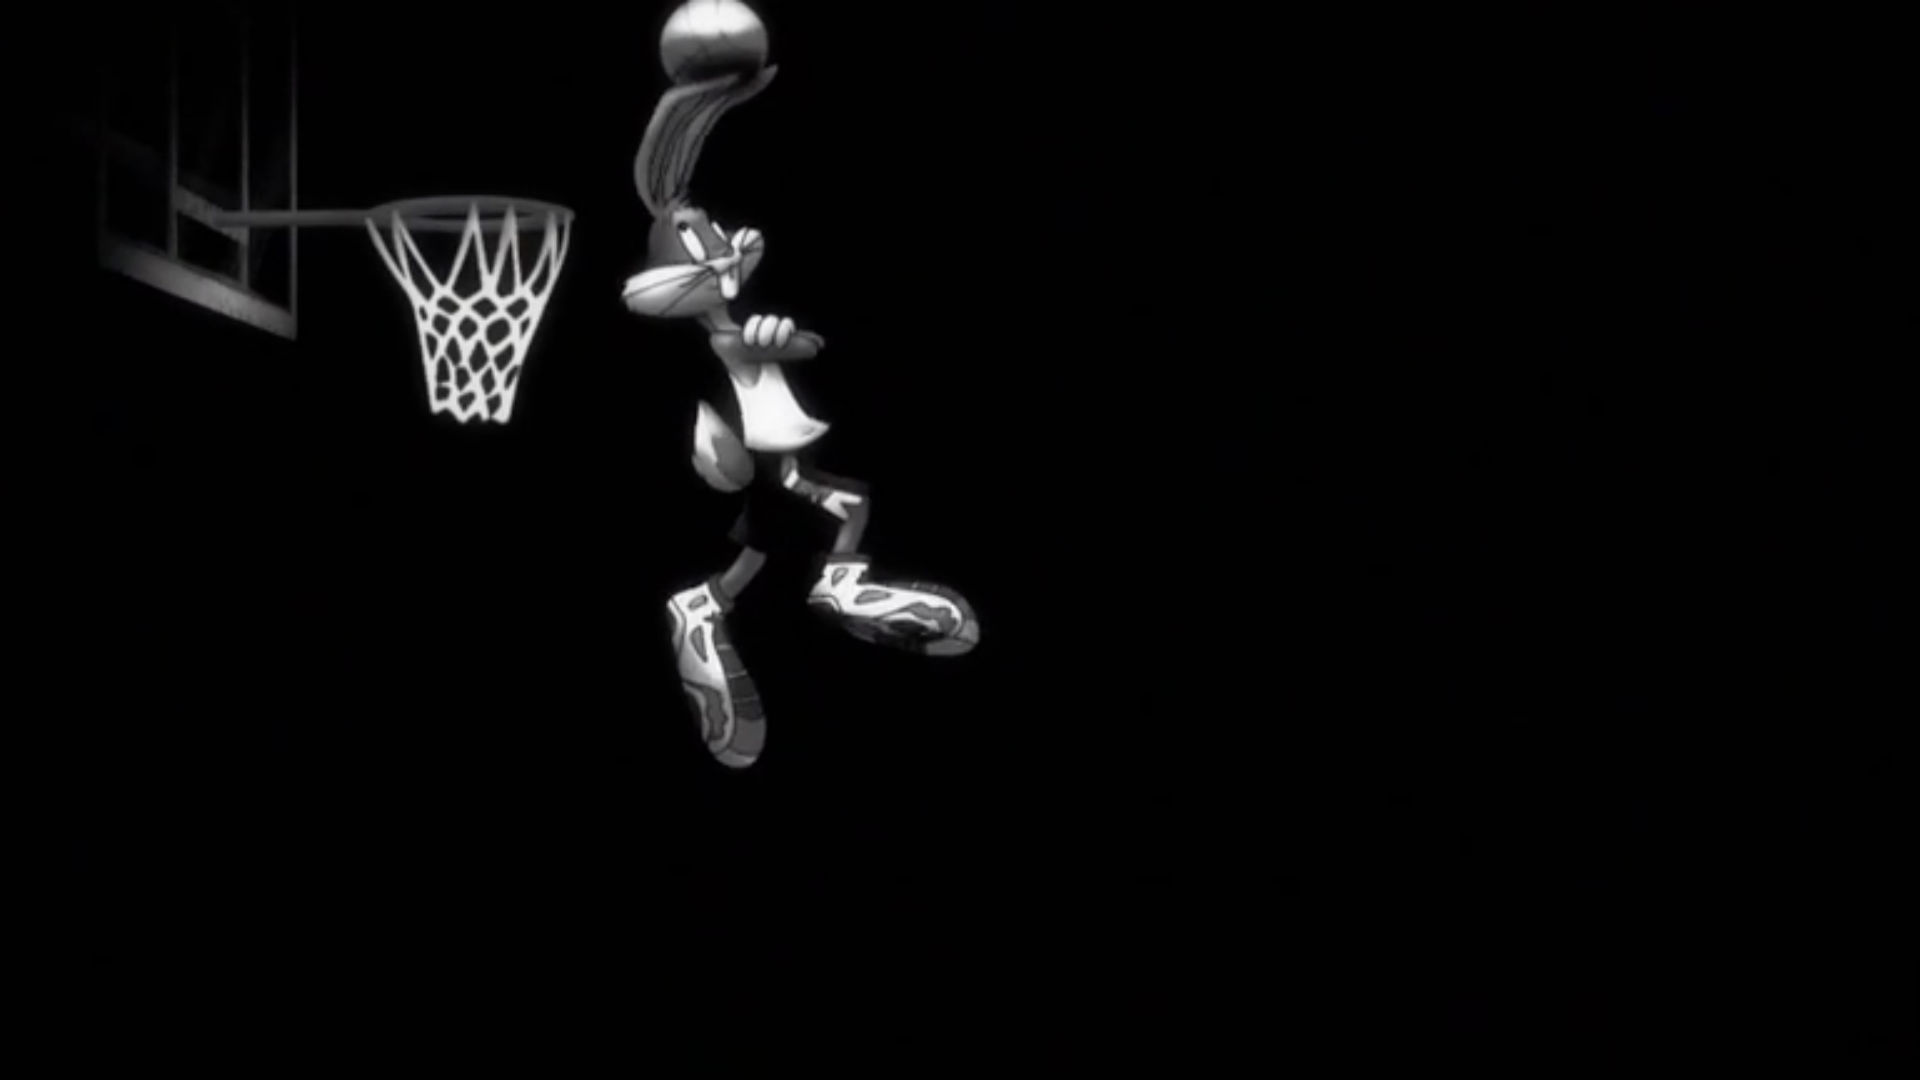 Watch Nike S New Hare Jordan 7 Commercial Sporting News